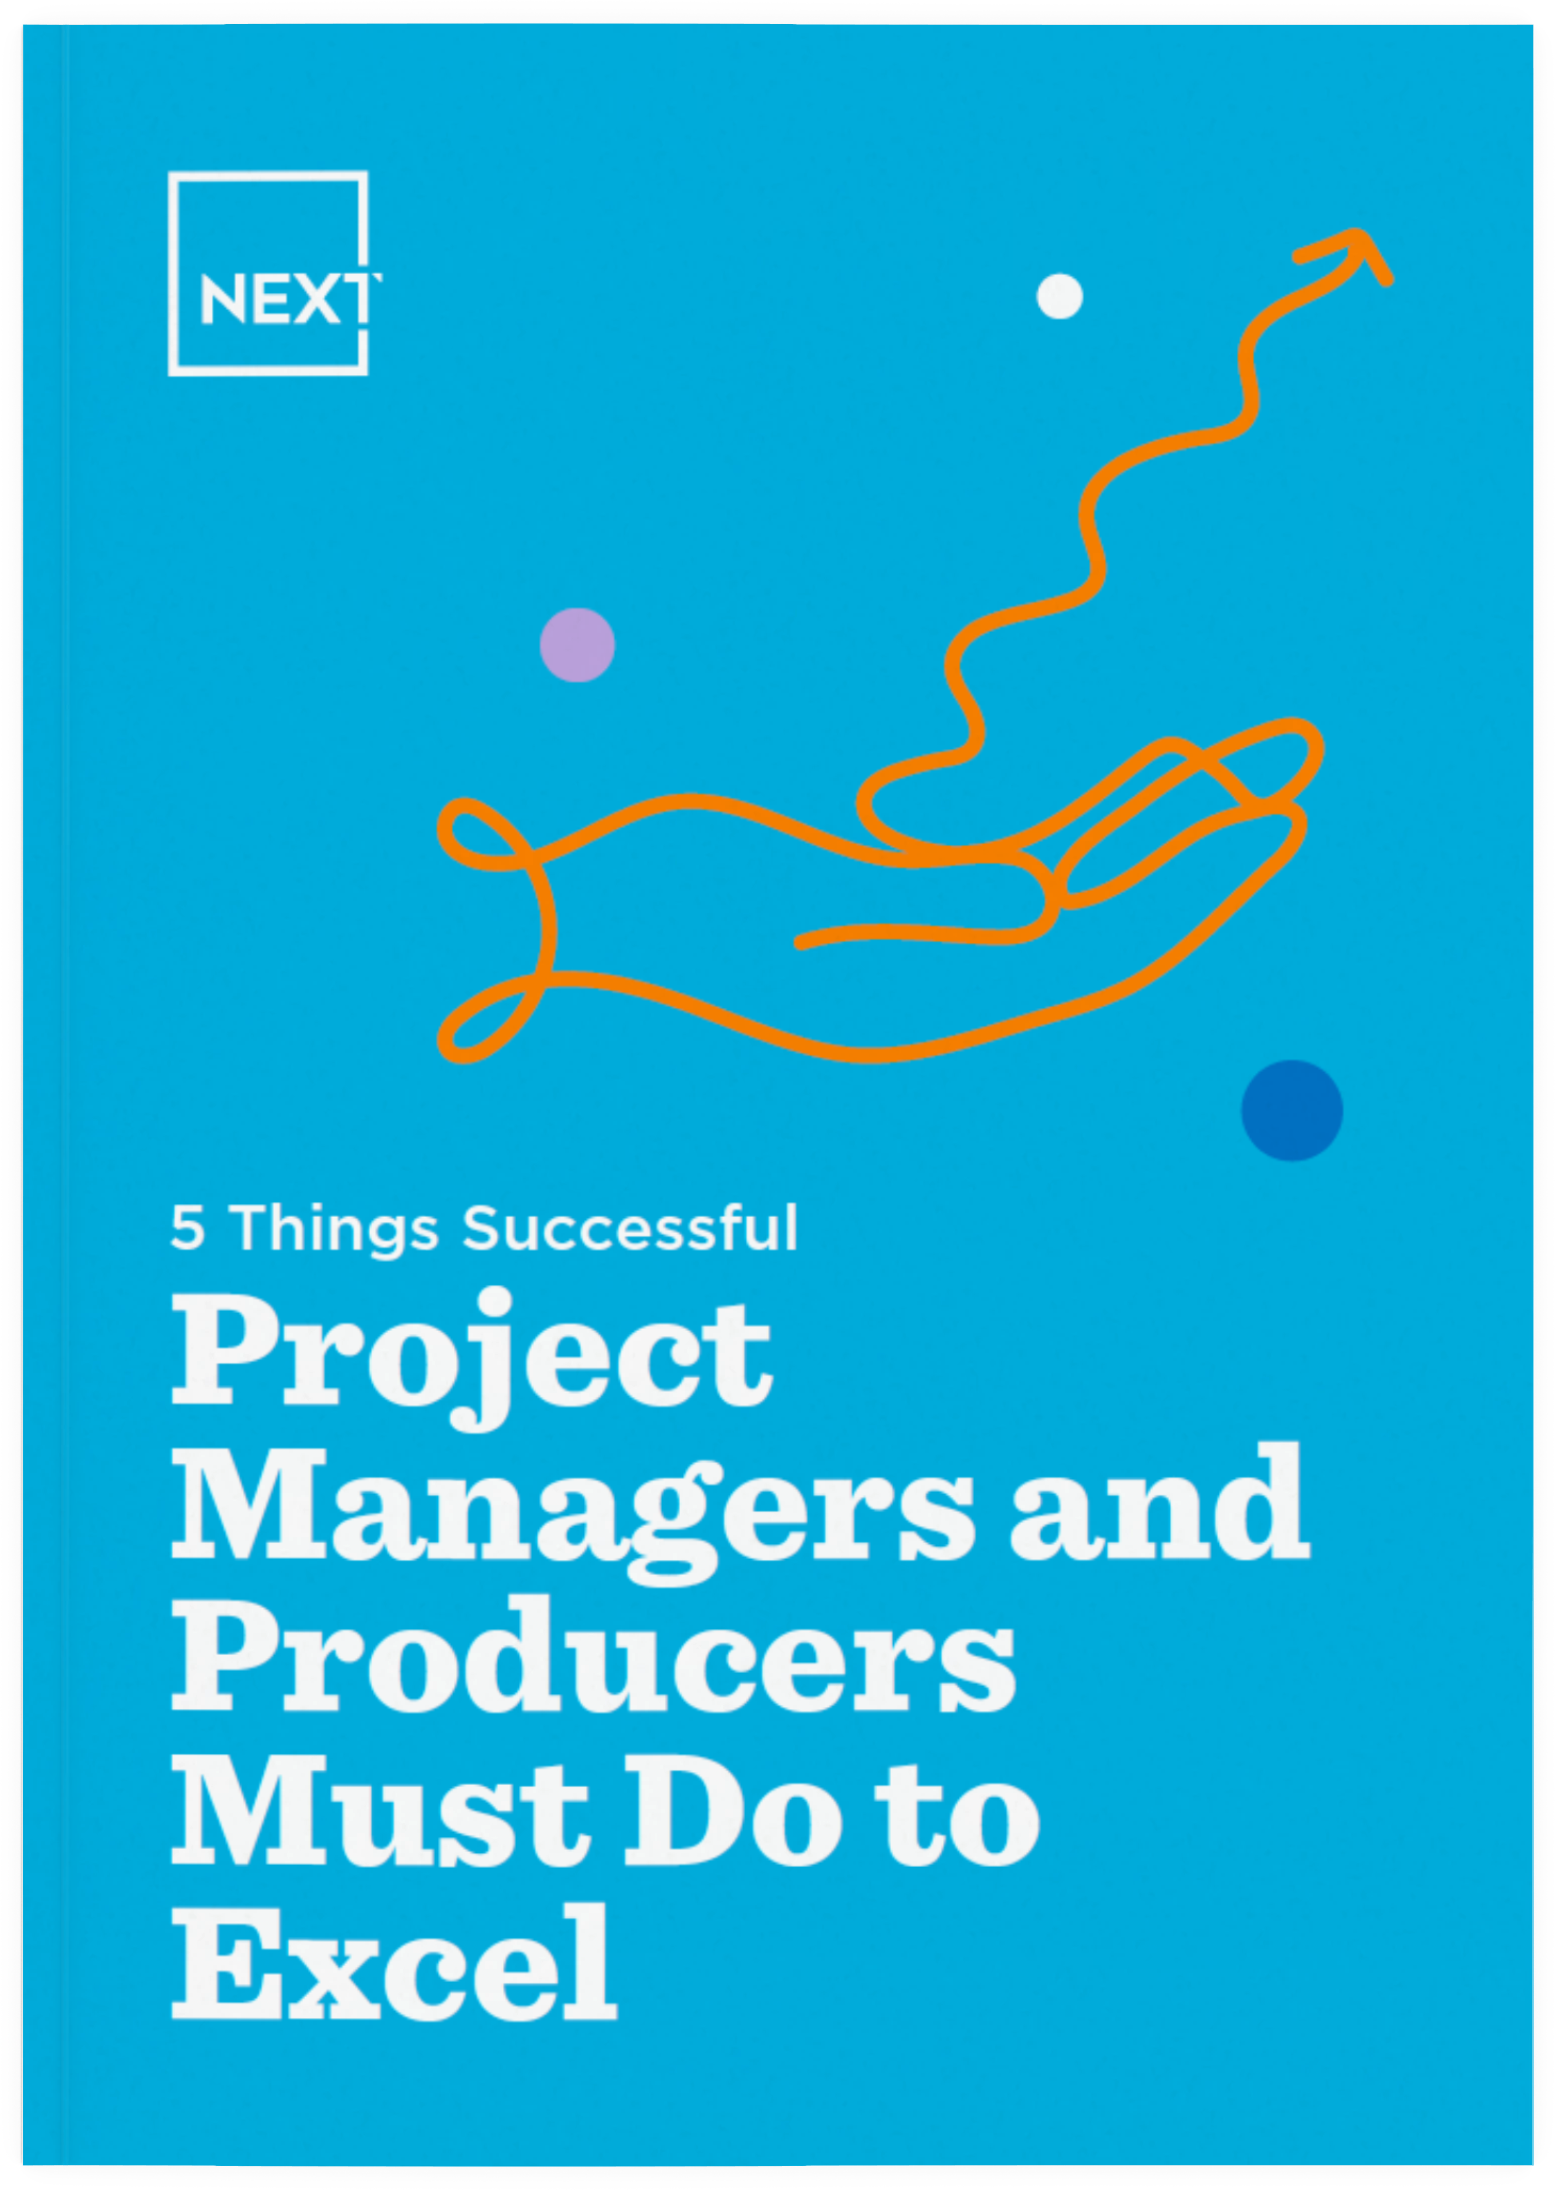 5 Things Successful Project Managers and Producers Do To Excel